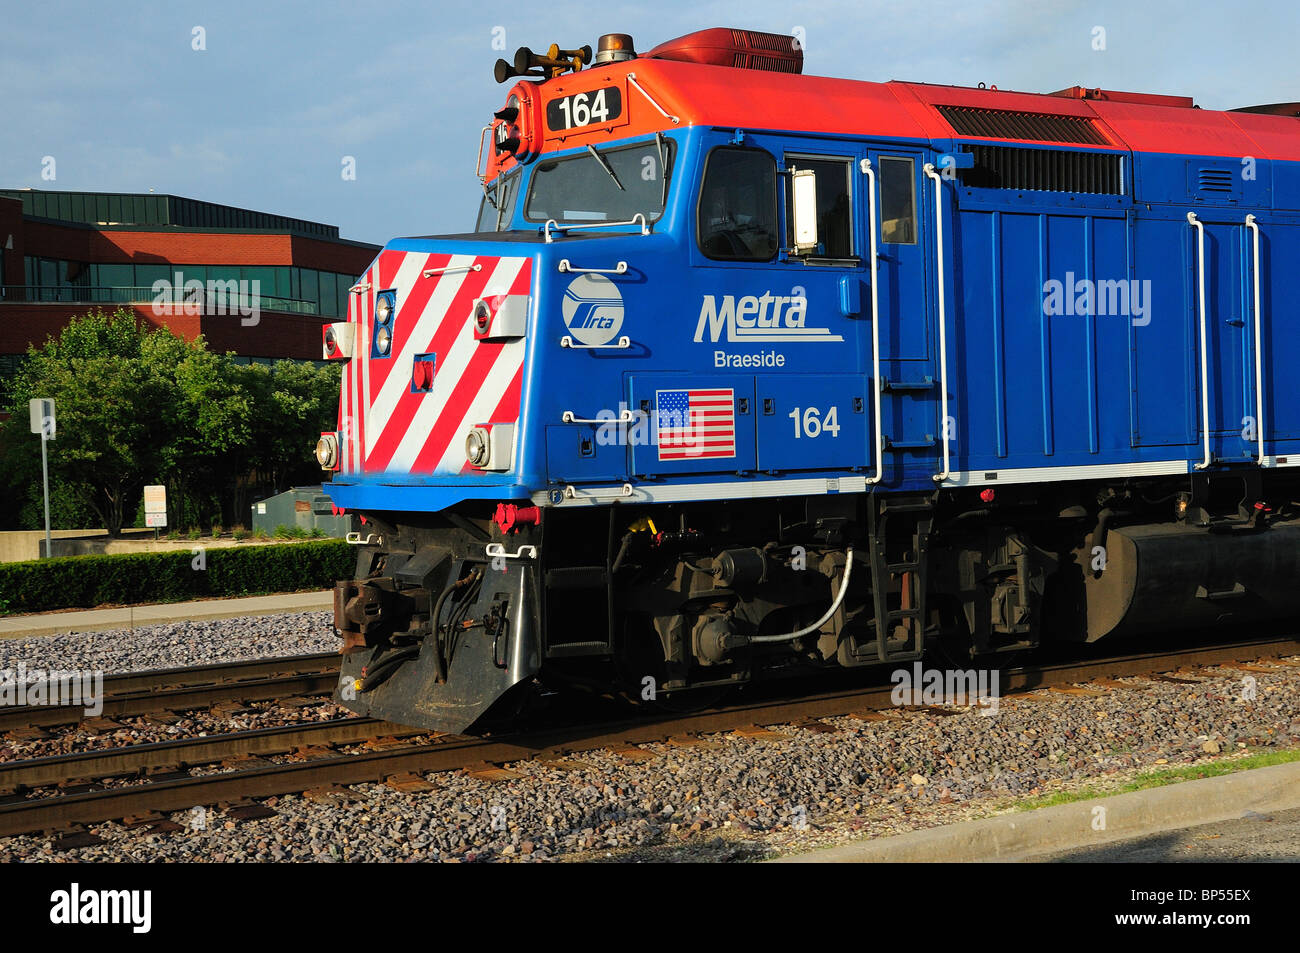 Chicago Metra Commuter Train Engine - Stock Image